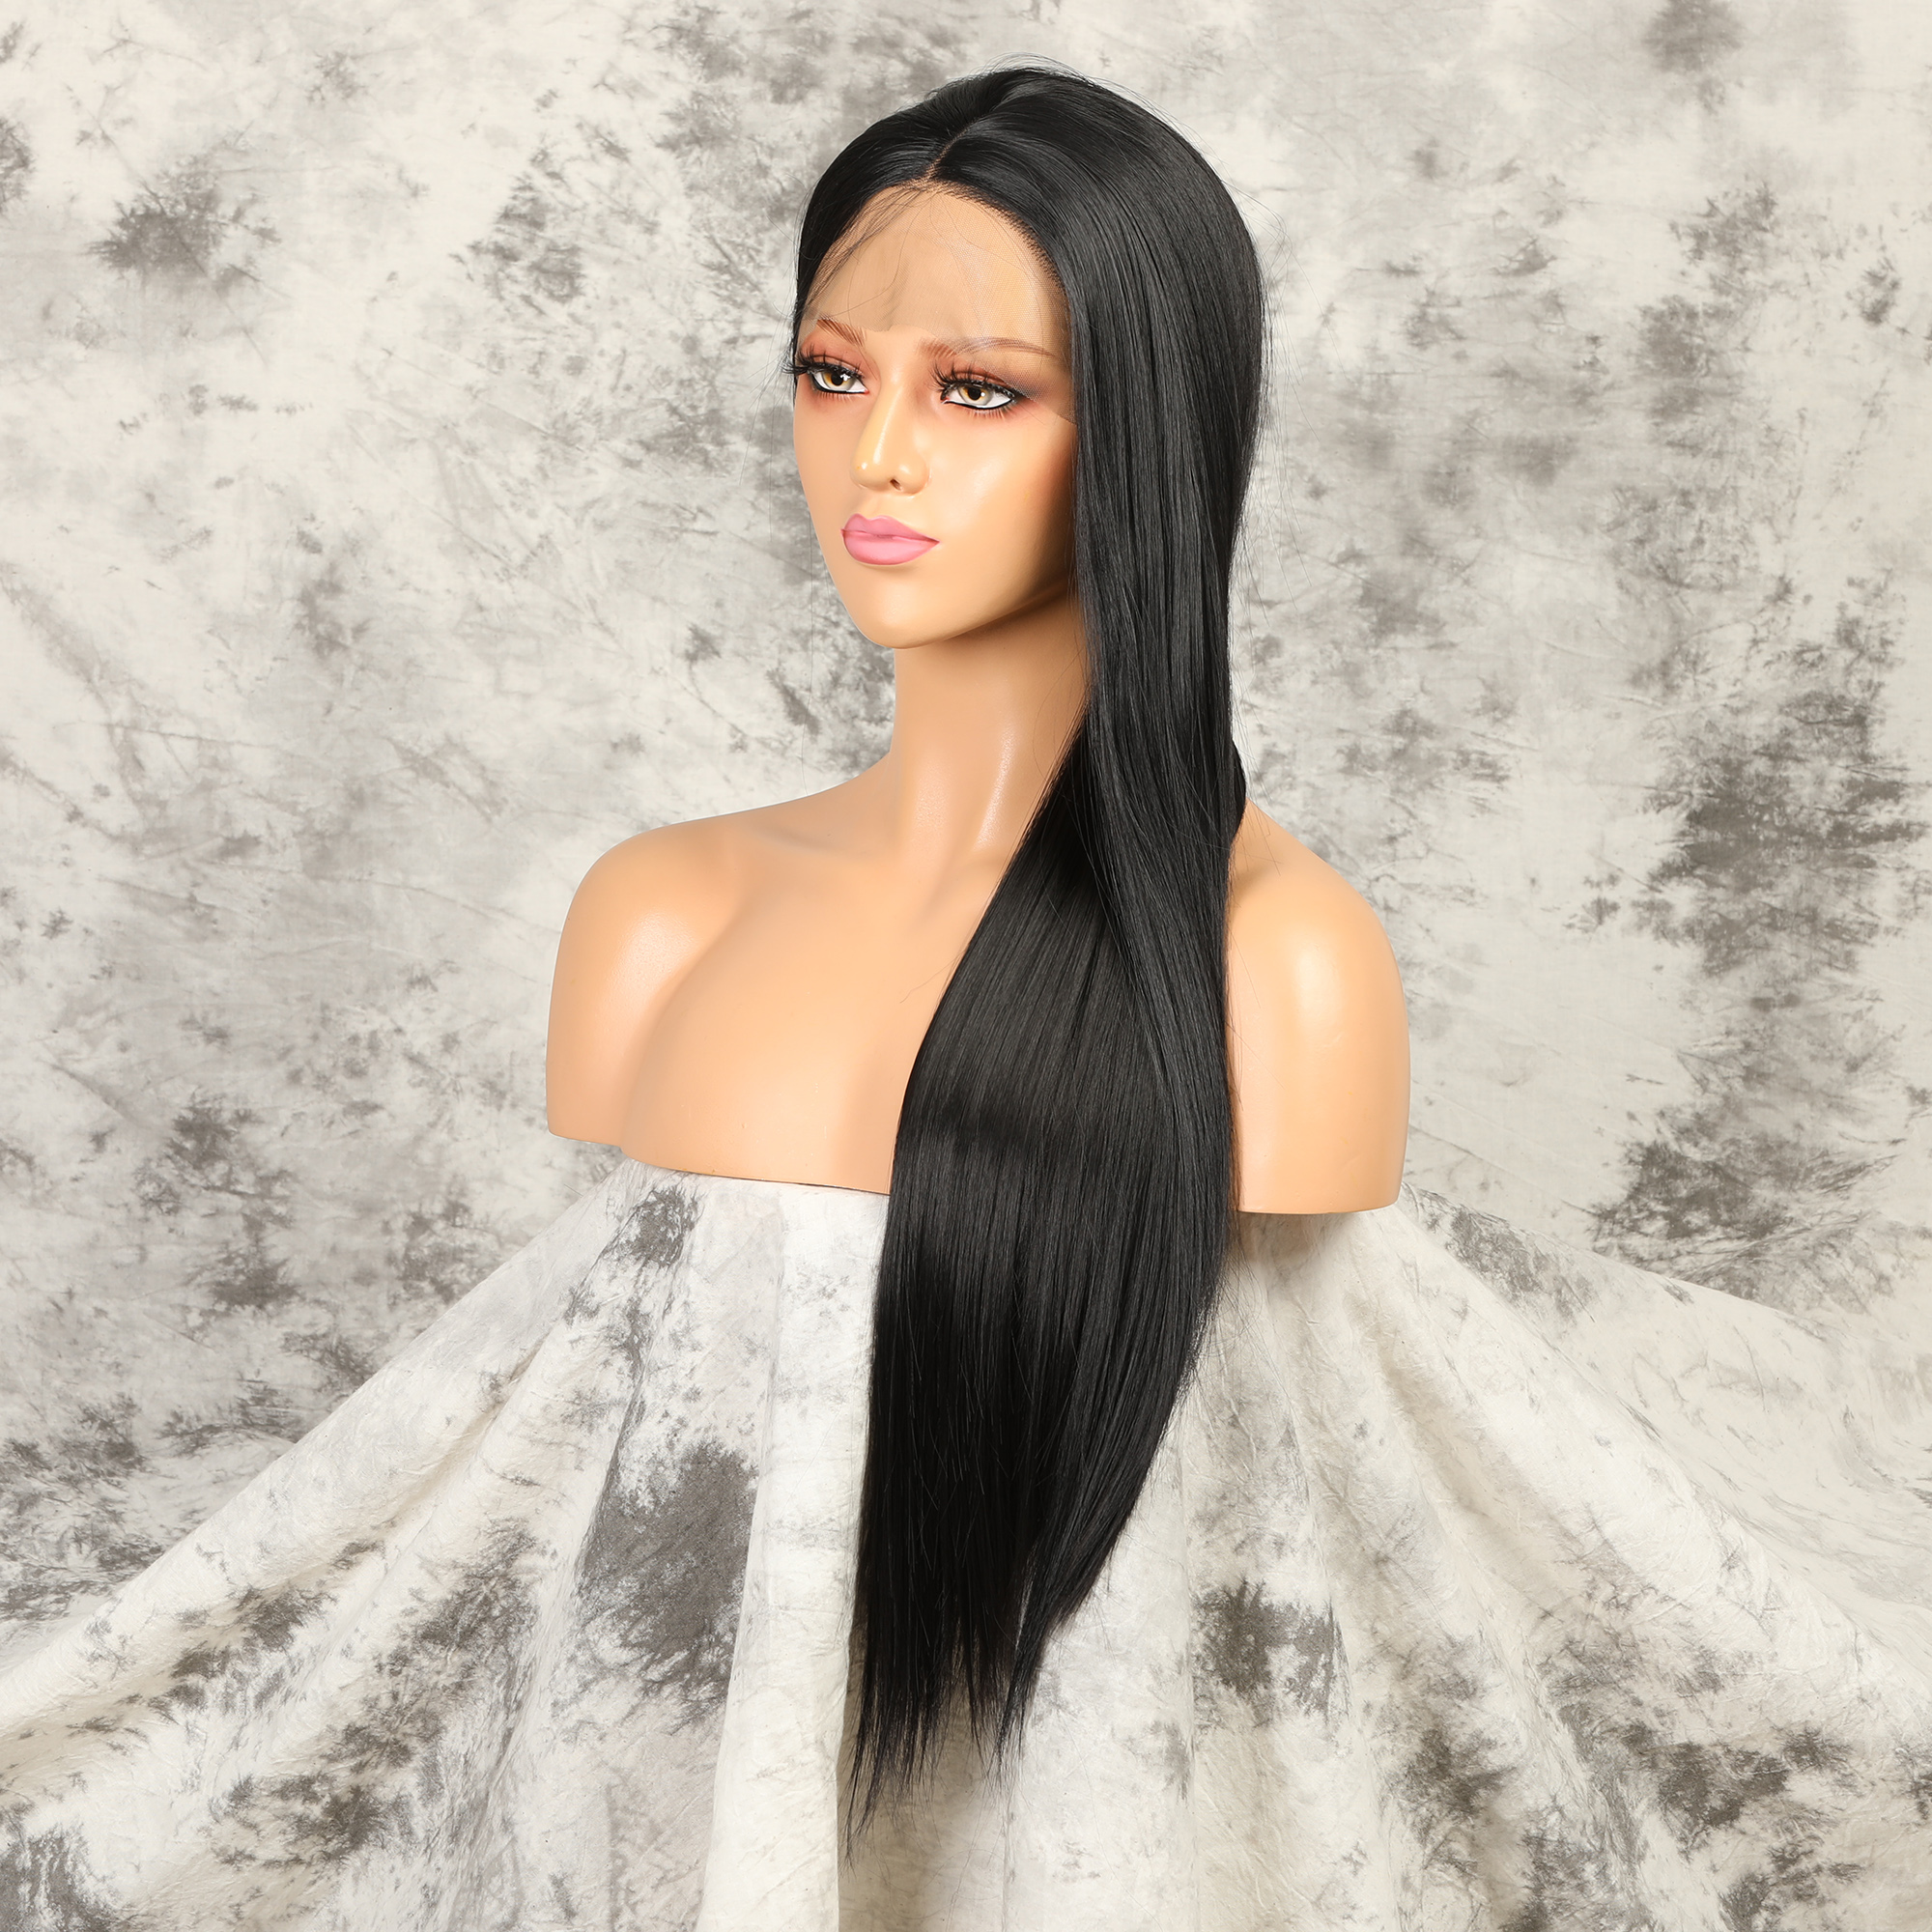 Synthetic Straight Lace Front Wig Hd Lace Wigs 13x4 Glueless Lace Front Wigs For Women